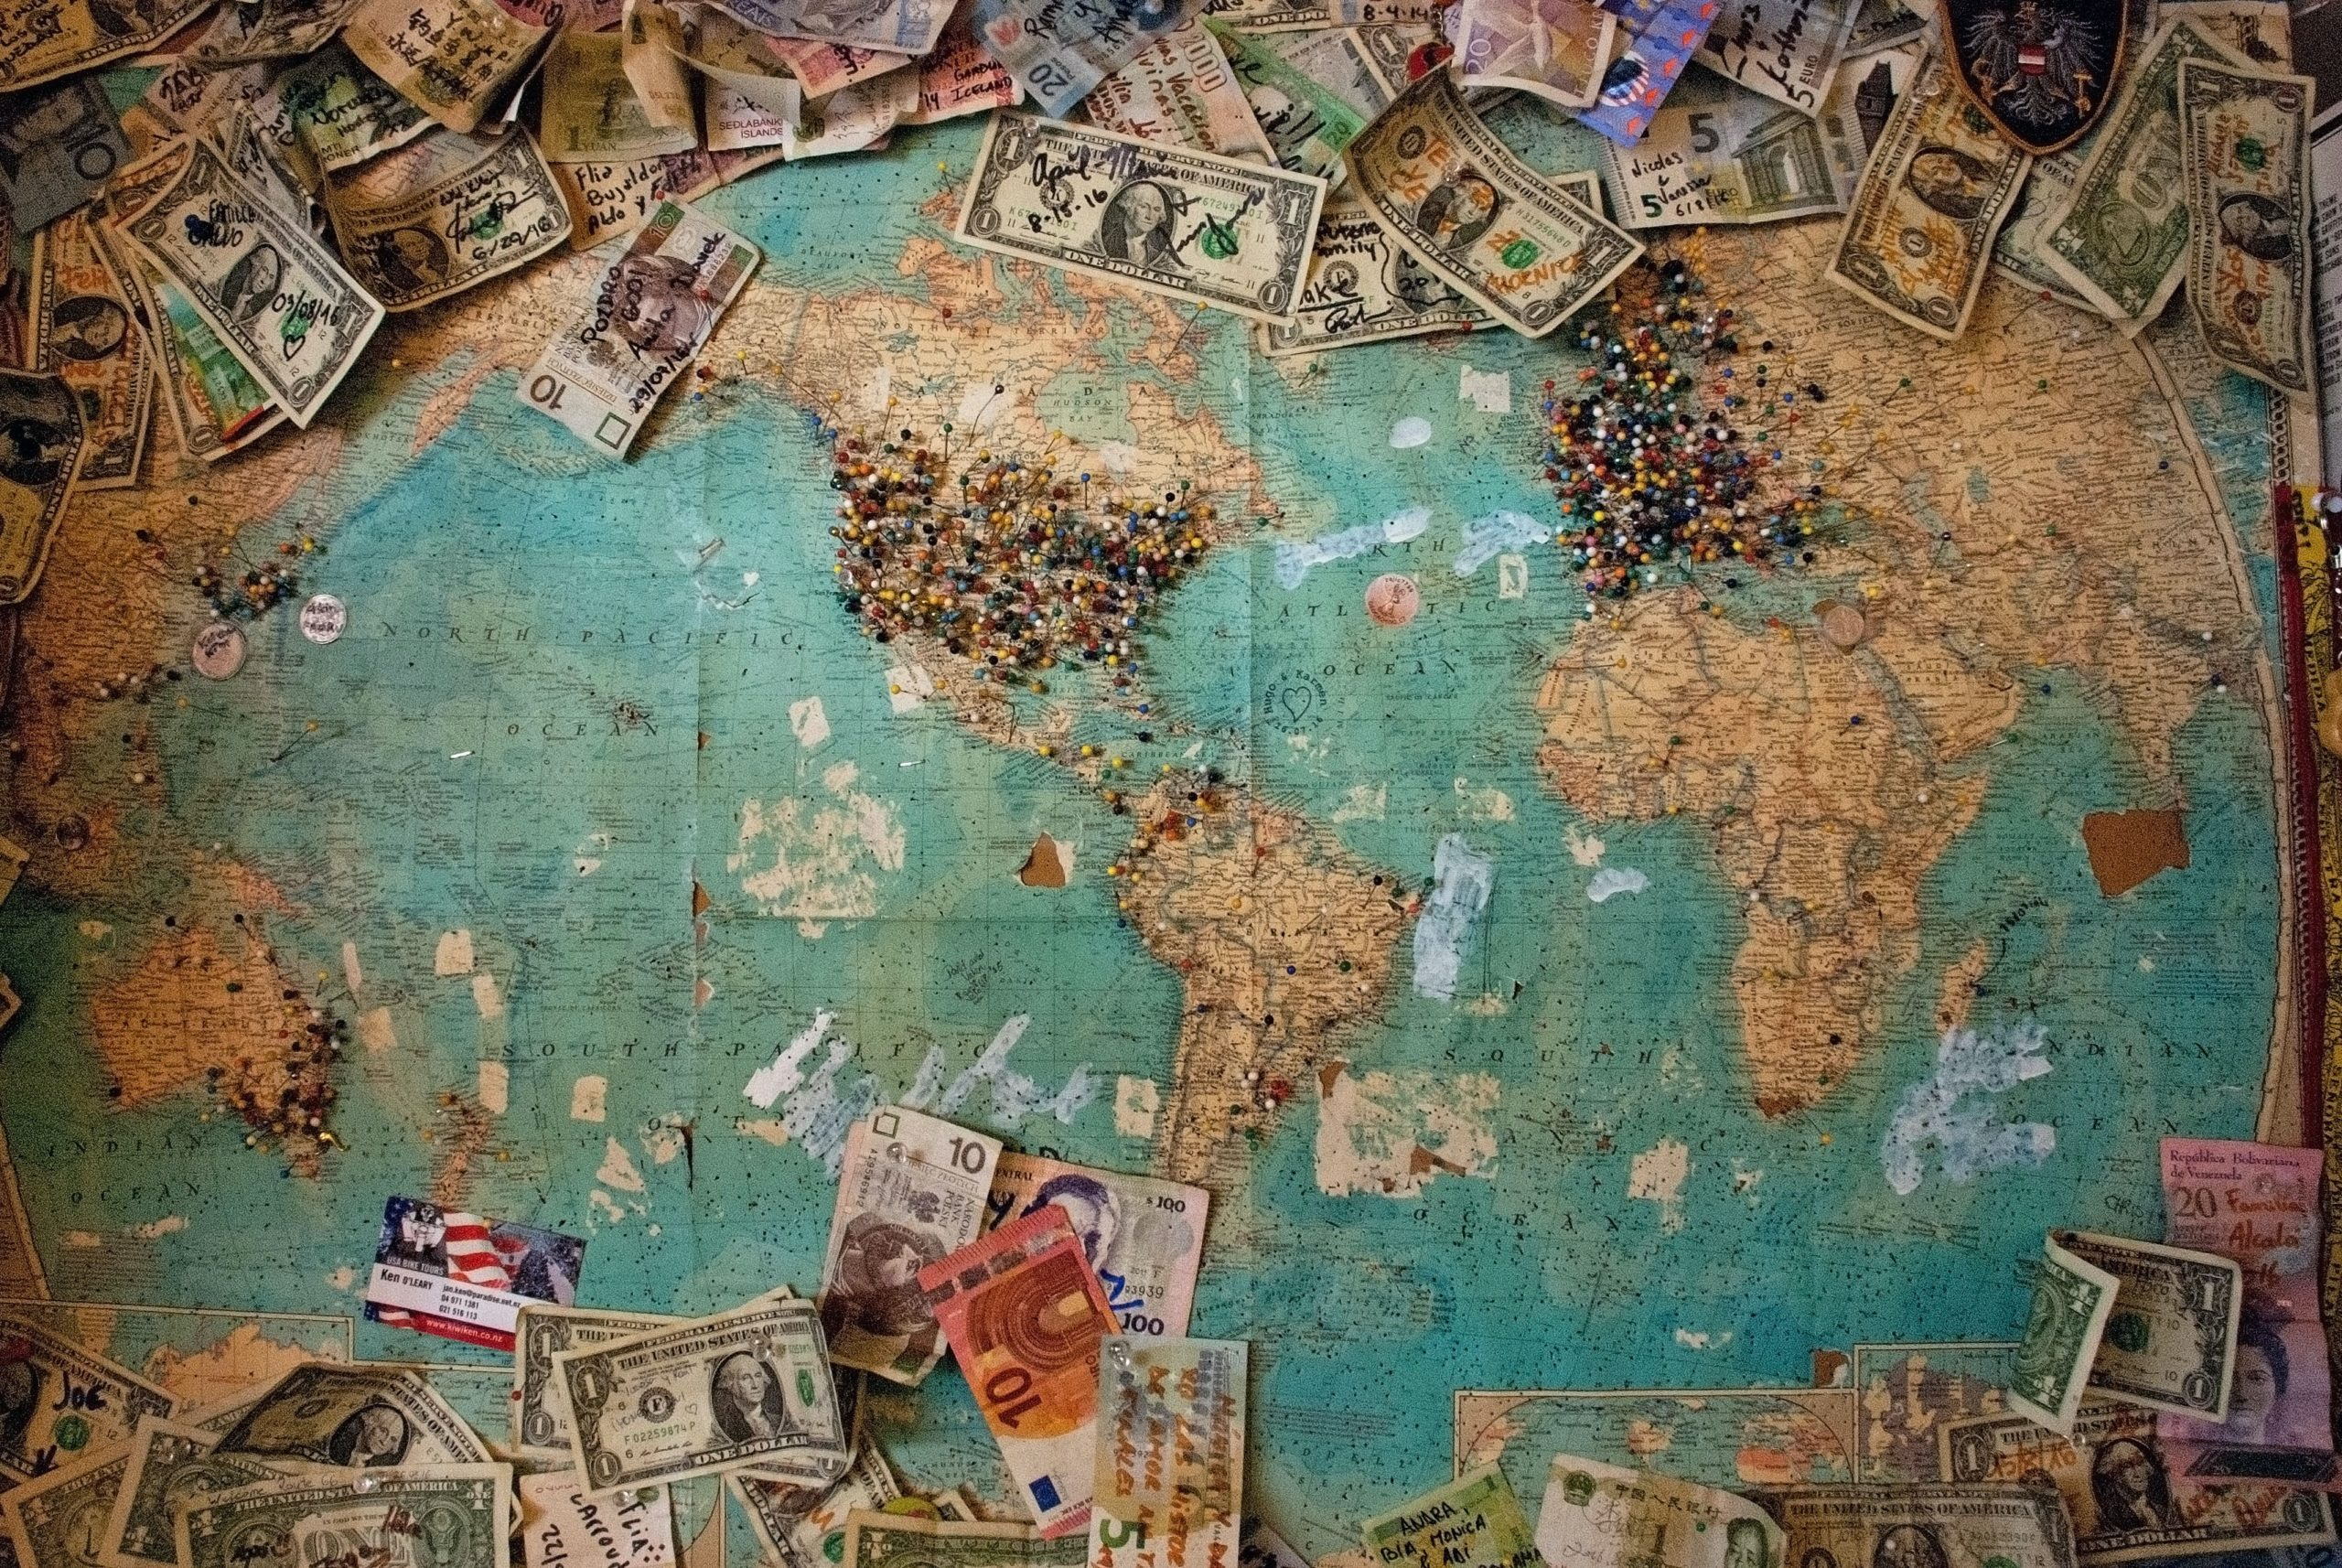 gain global advantage as described through a map of the world riddled with pins on the US and other countries and different monetary denominations scattered above and below the map